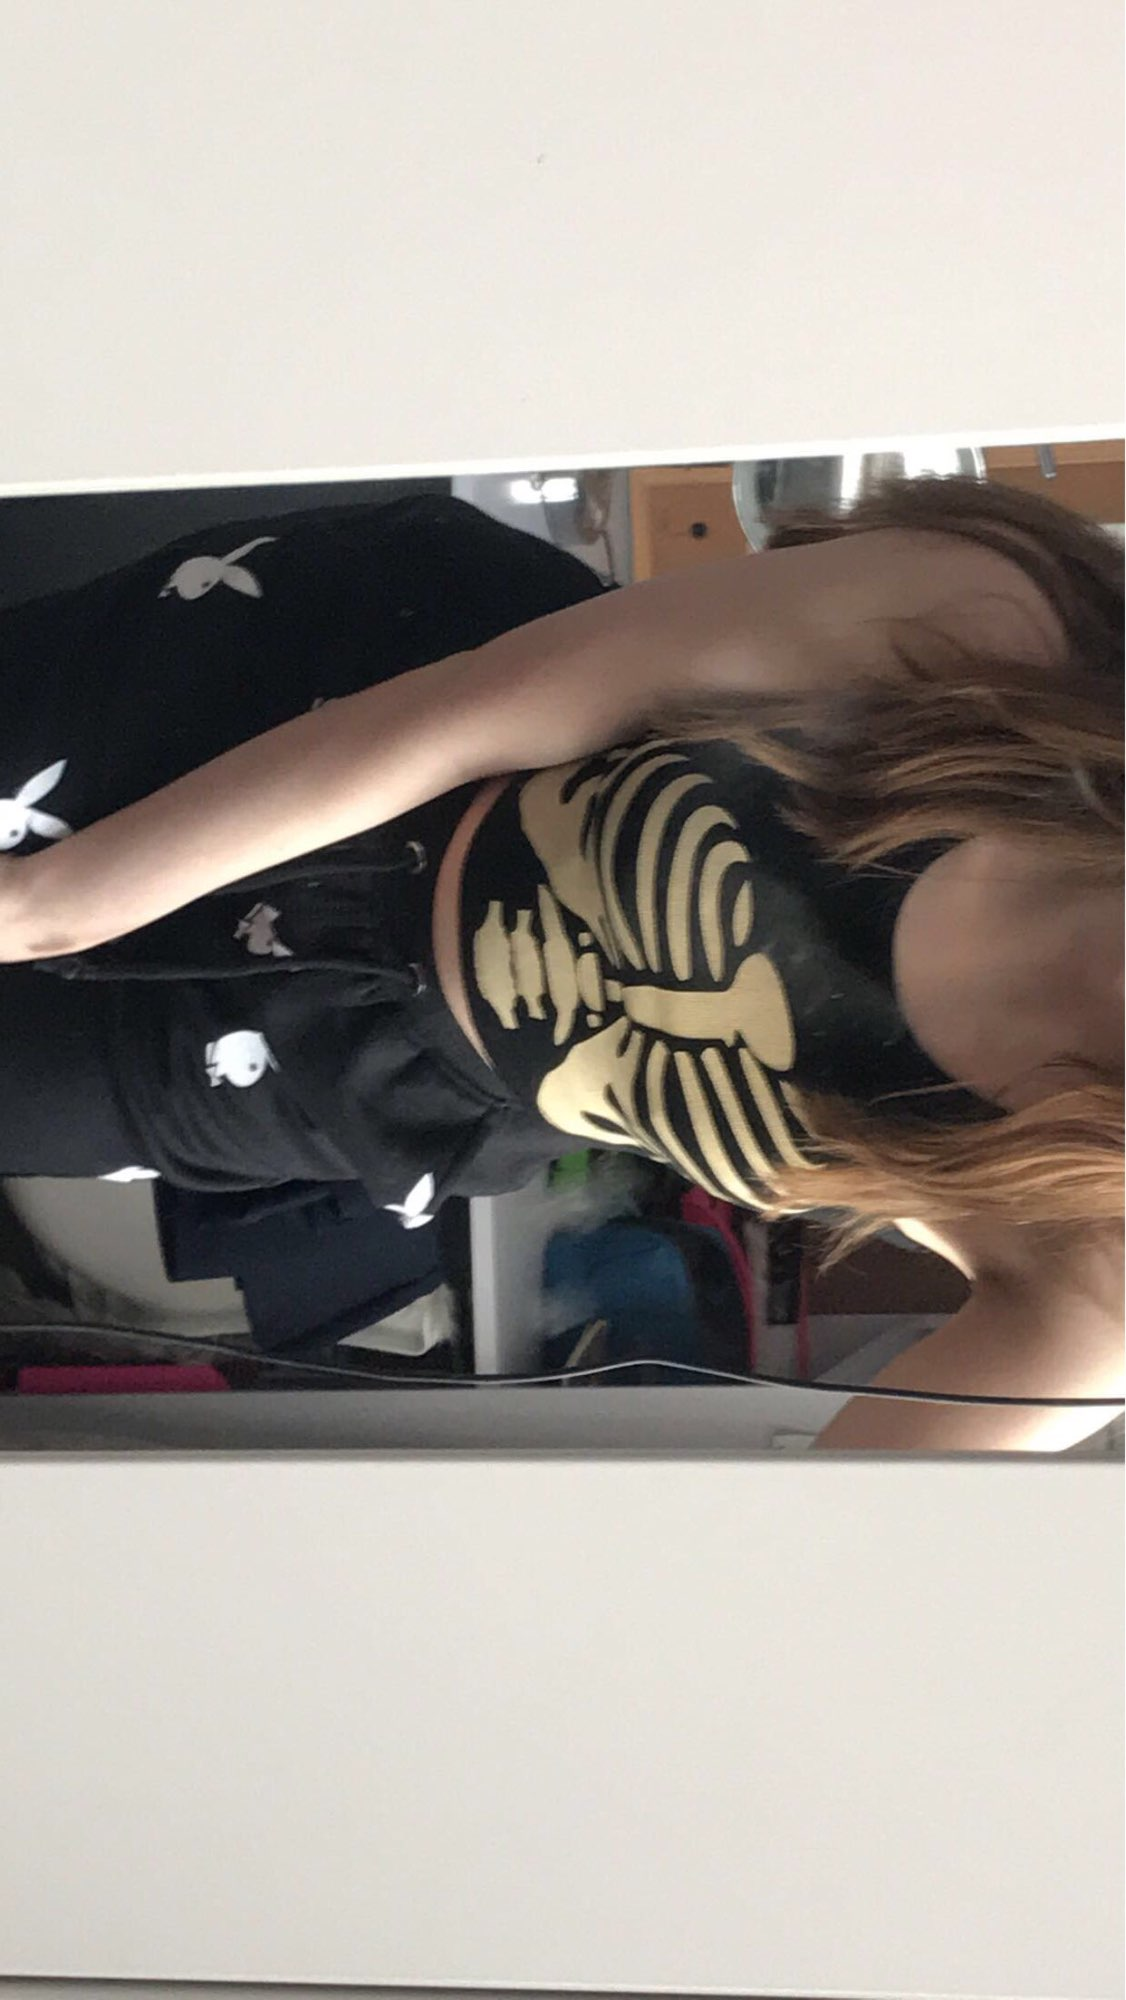 E-girl Gothic Punk Y2K Aesthetic Crop Top  with skeleton print photo review